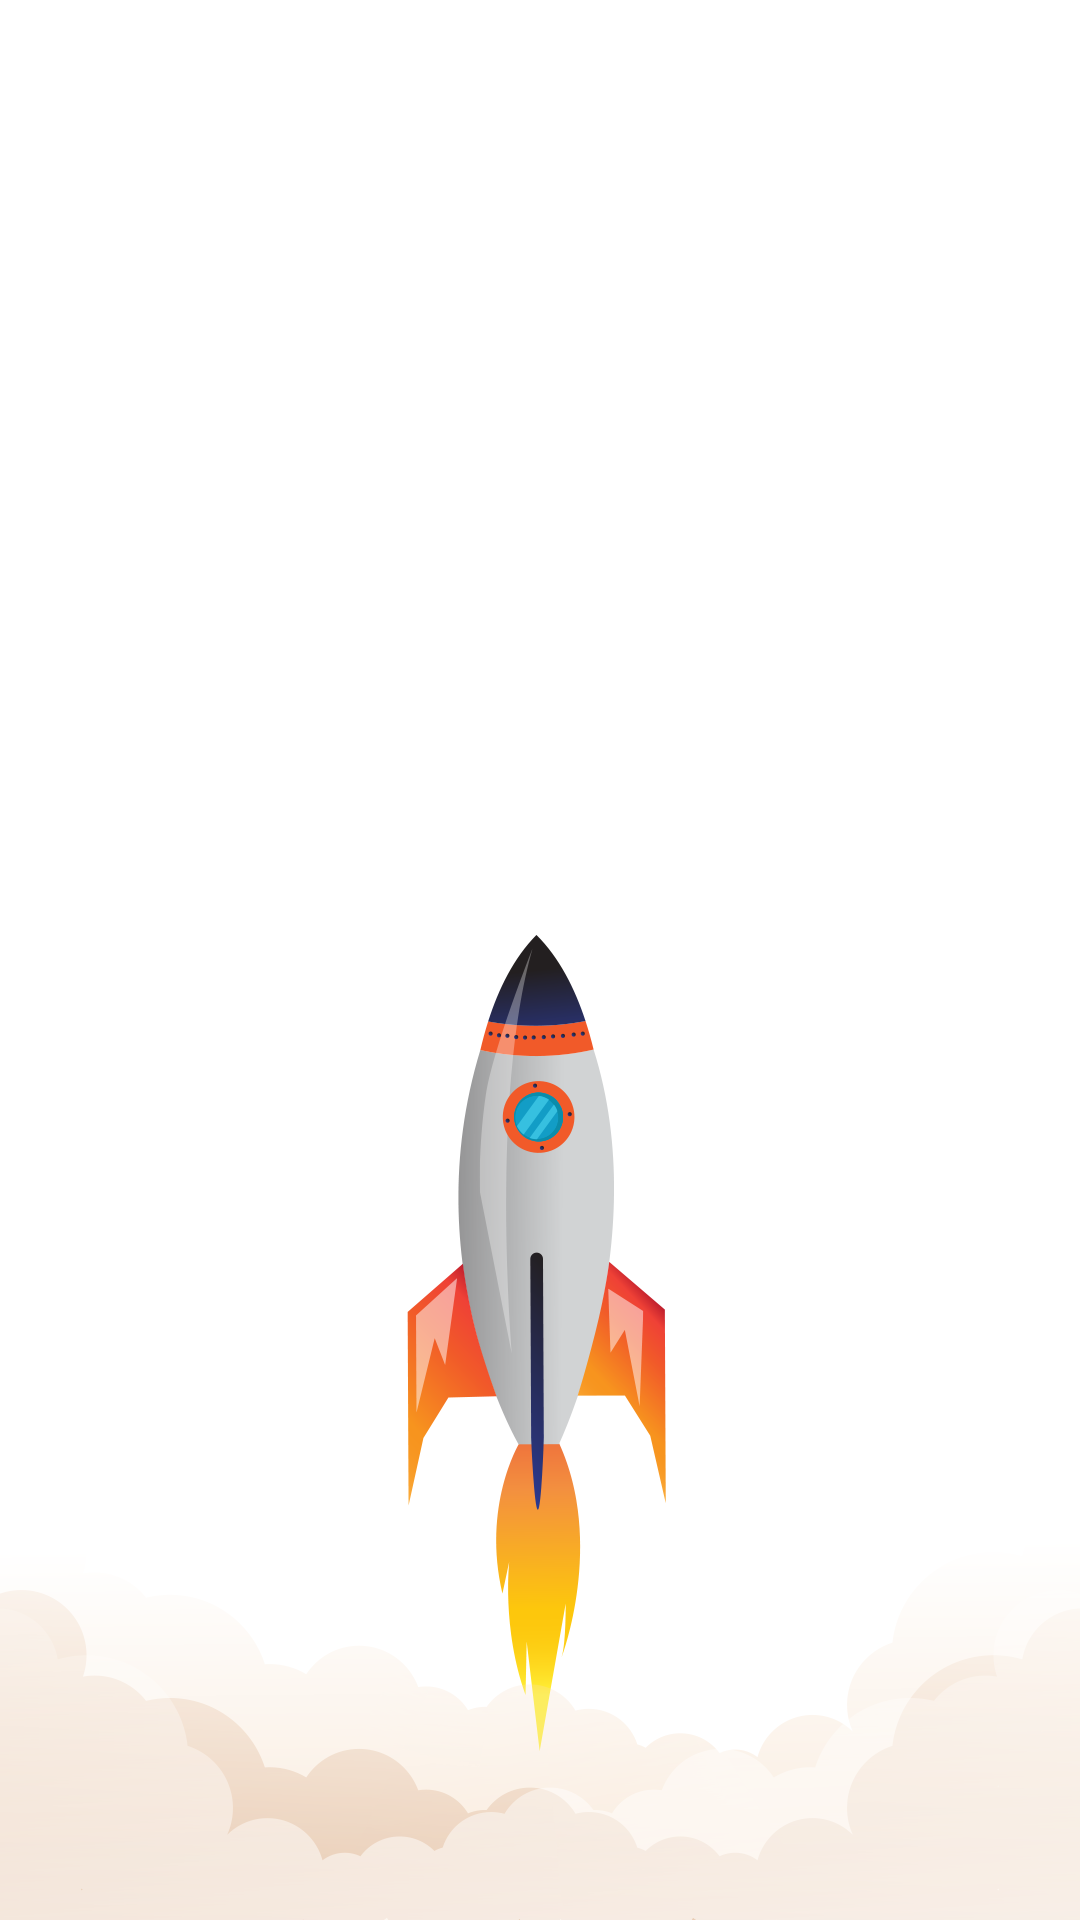 Minimal iPhone wallpaper blast off Fond ecran